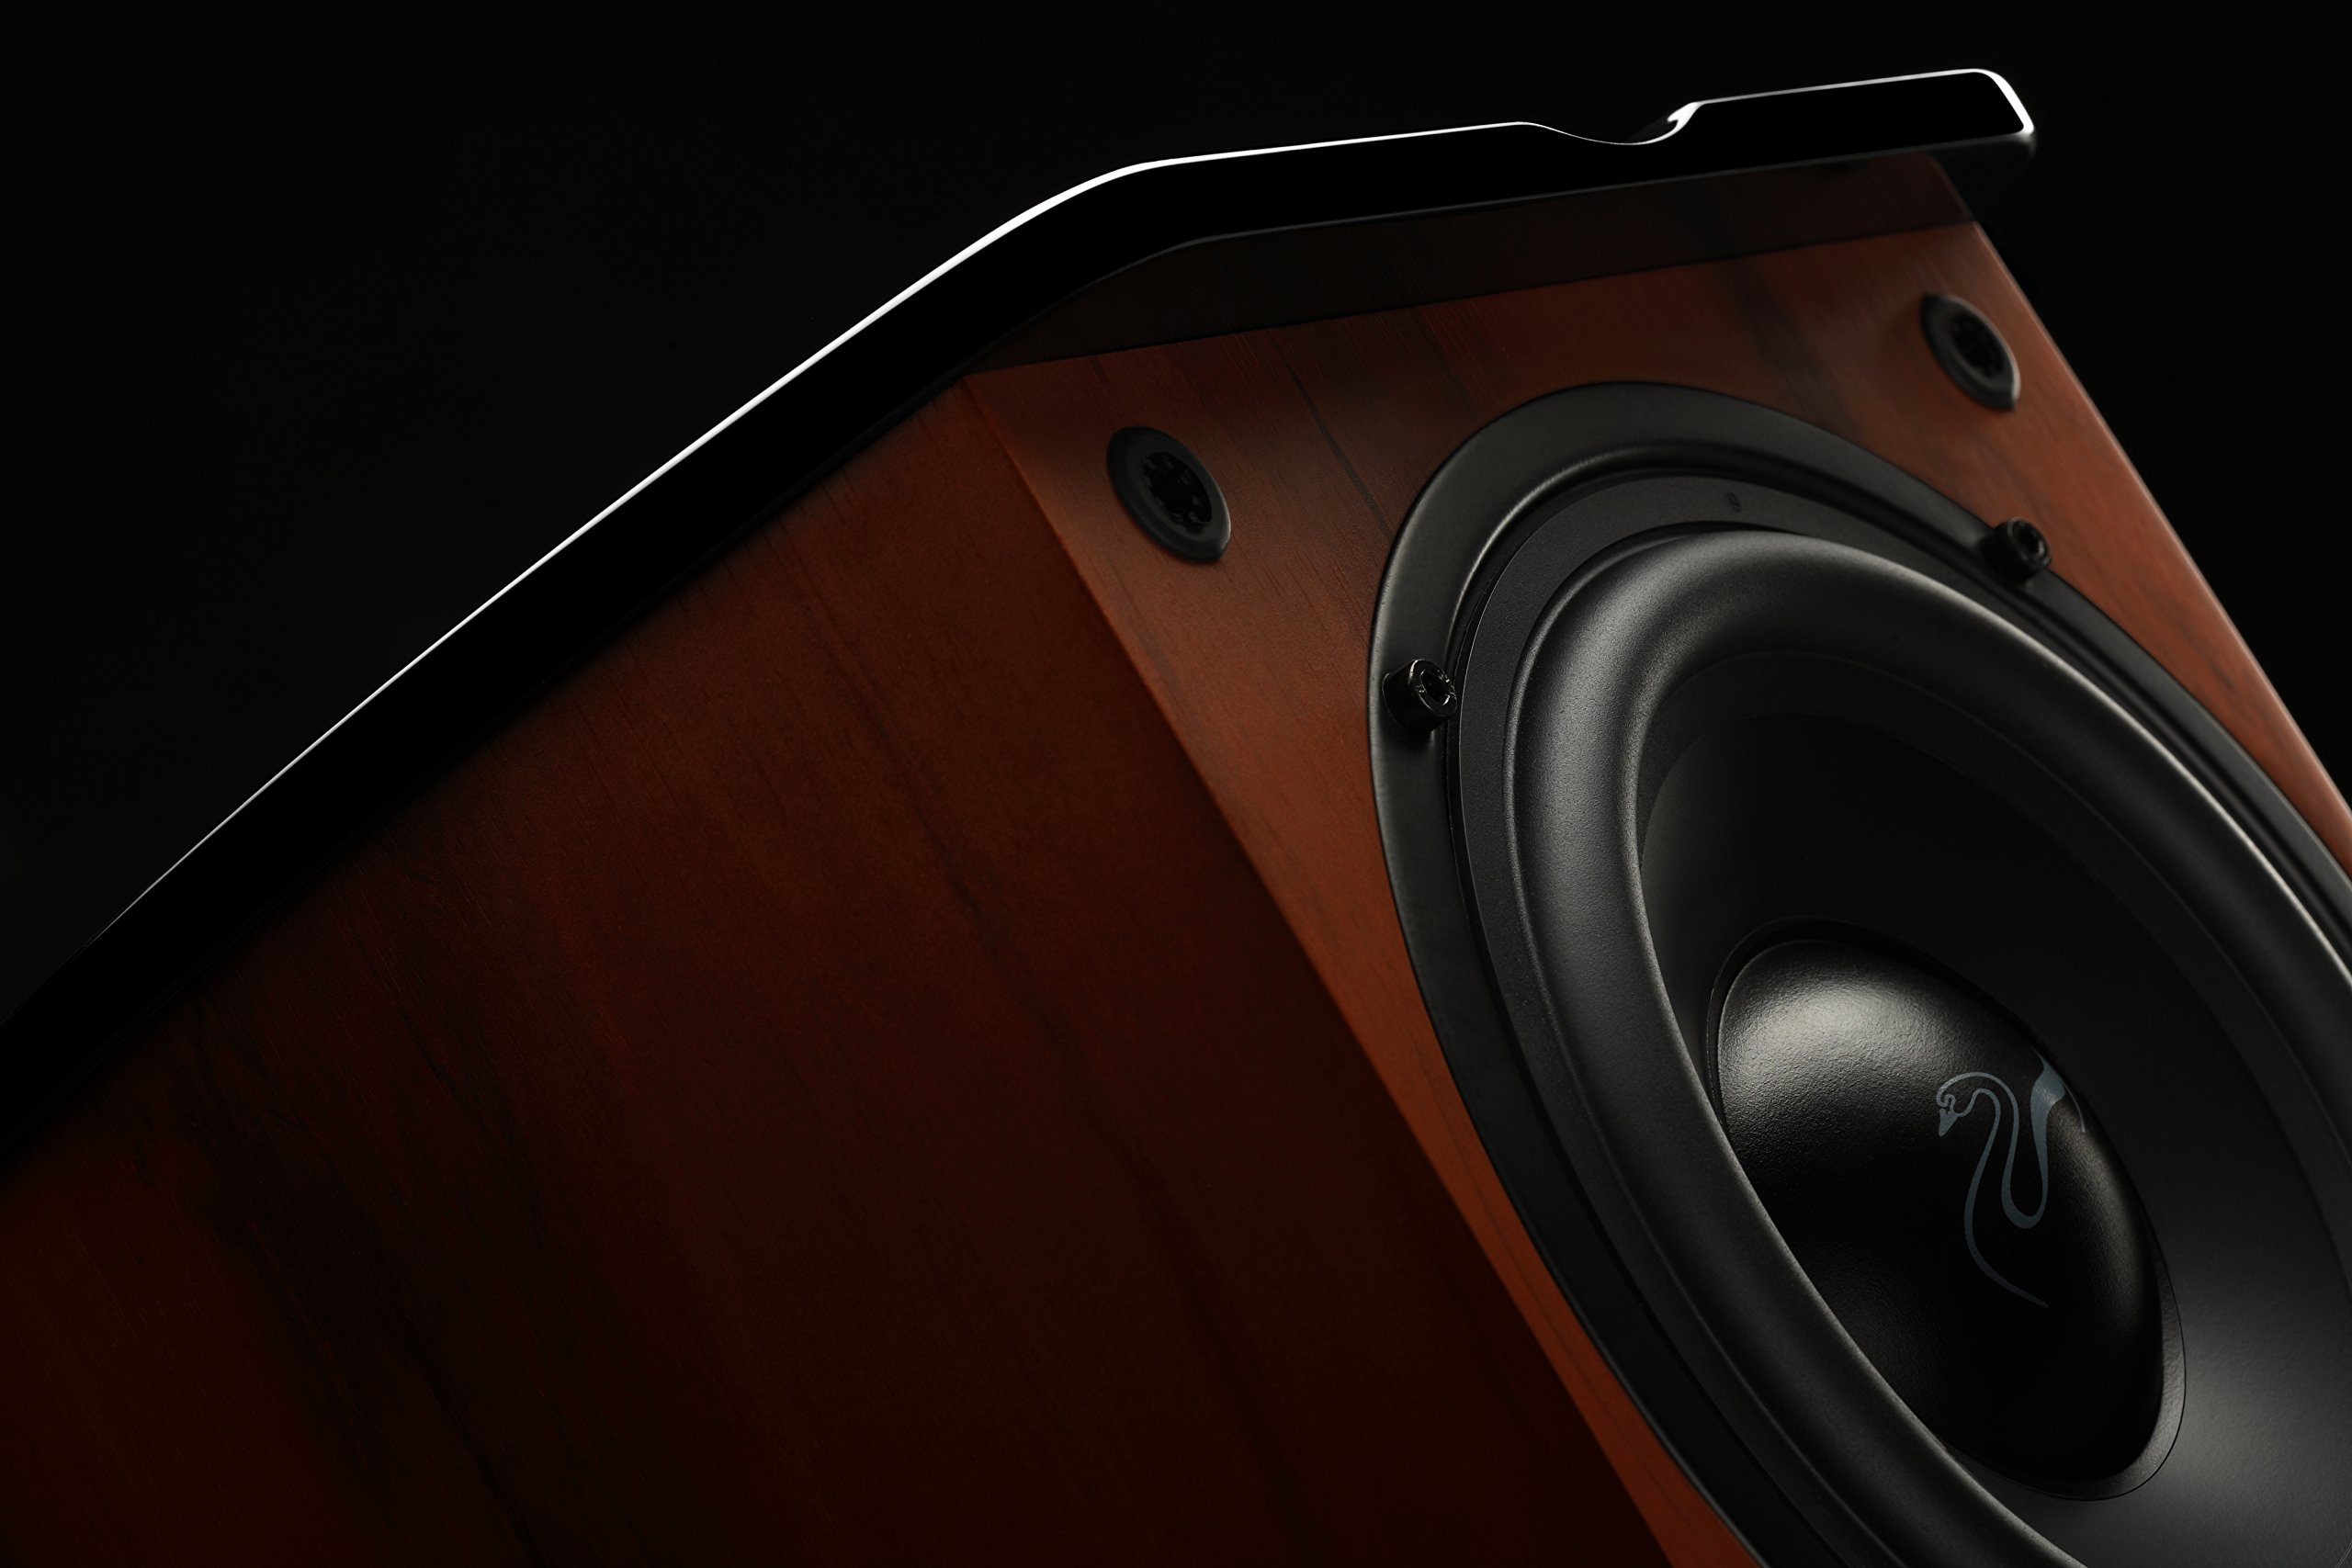 Swan Speakers - M20W - Beautiful Powered 2.1 Living Room Laptop Speakers -  6'' Subwoofer - Rosewood with Pink Gold Aluminium Drivers and Piano Finish - 50W RMS Internal Amplifier by Swan Speakers (Image #3)